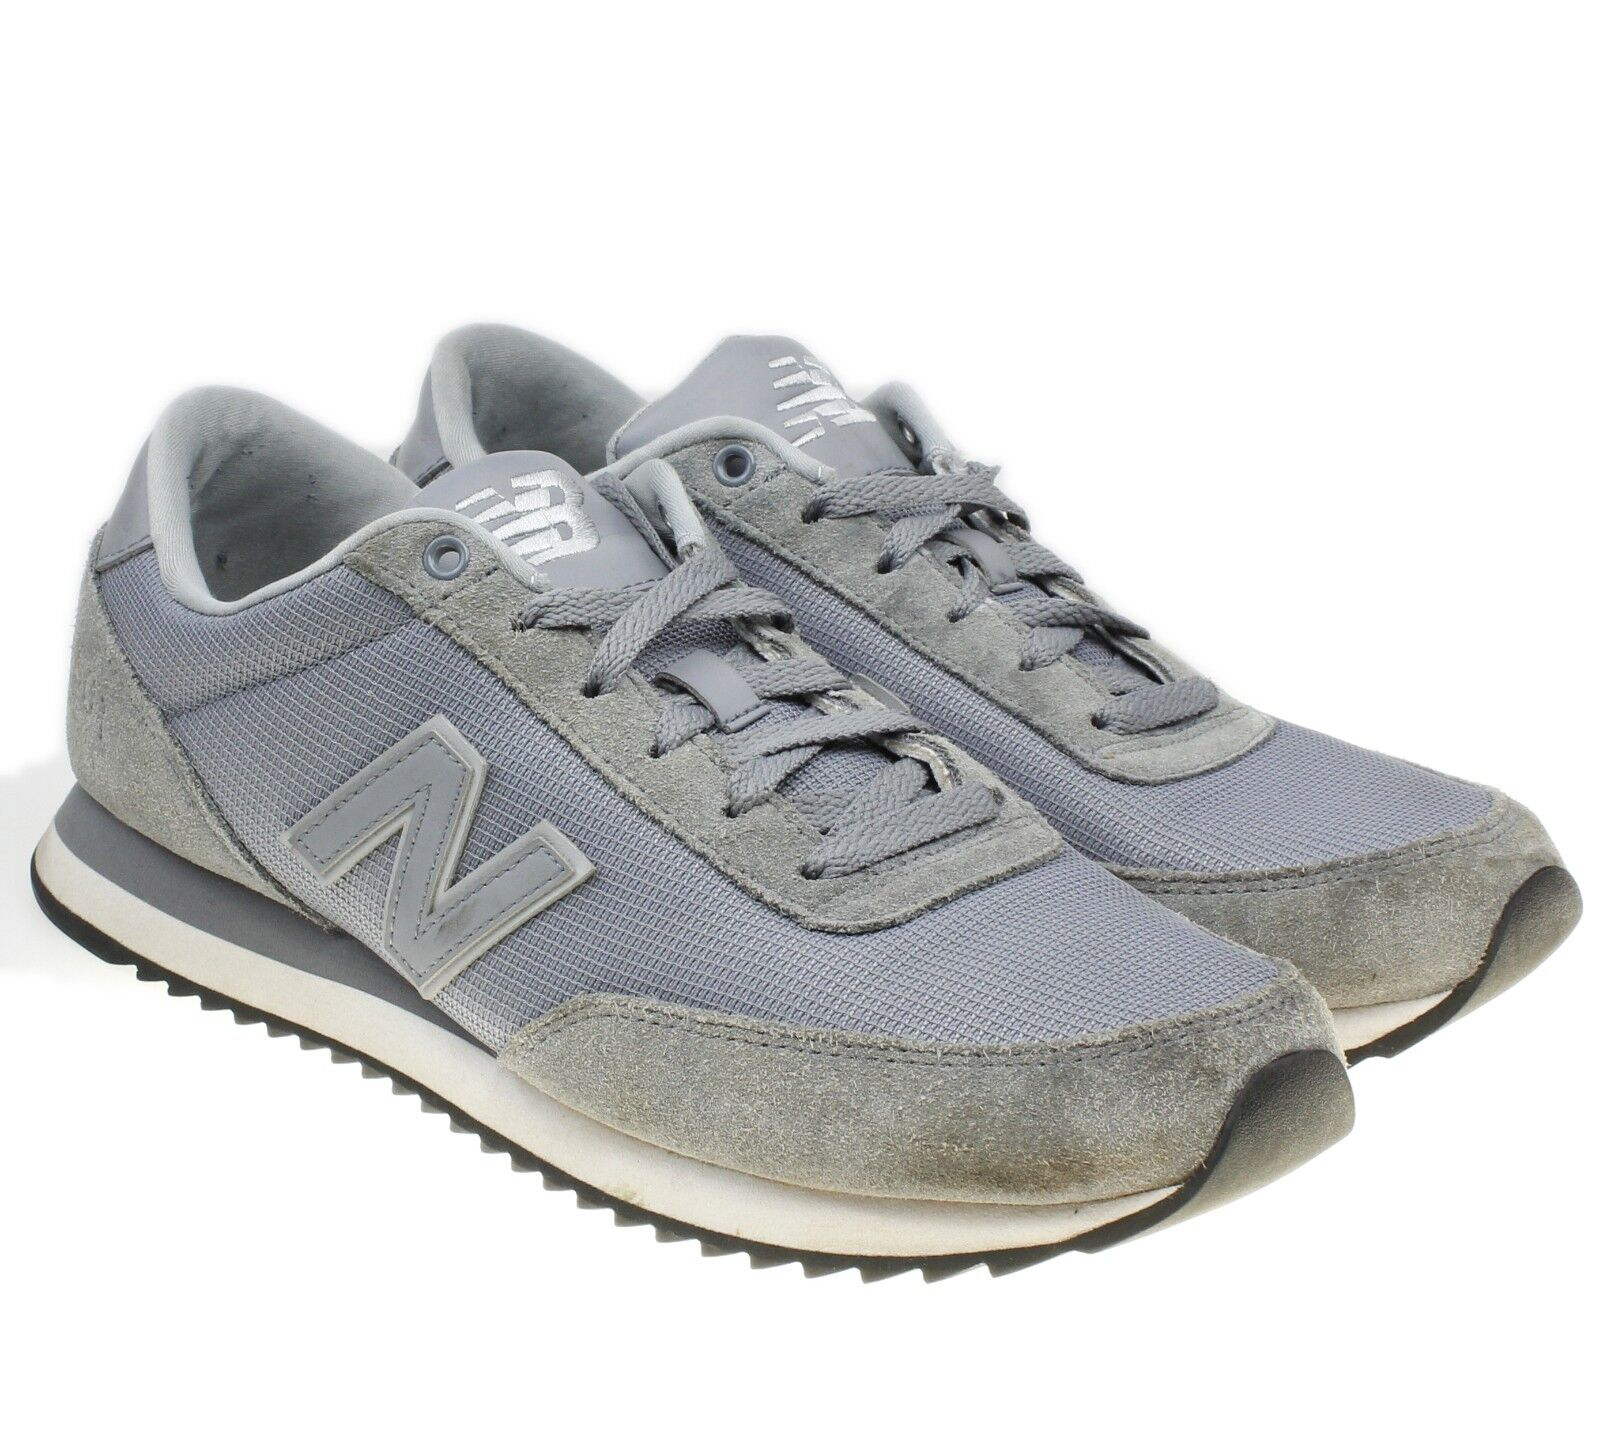 Men's New Balance 501 Casual shoes Gun Metal Silver Mink MZ501CRC Size 10.5